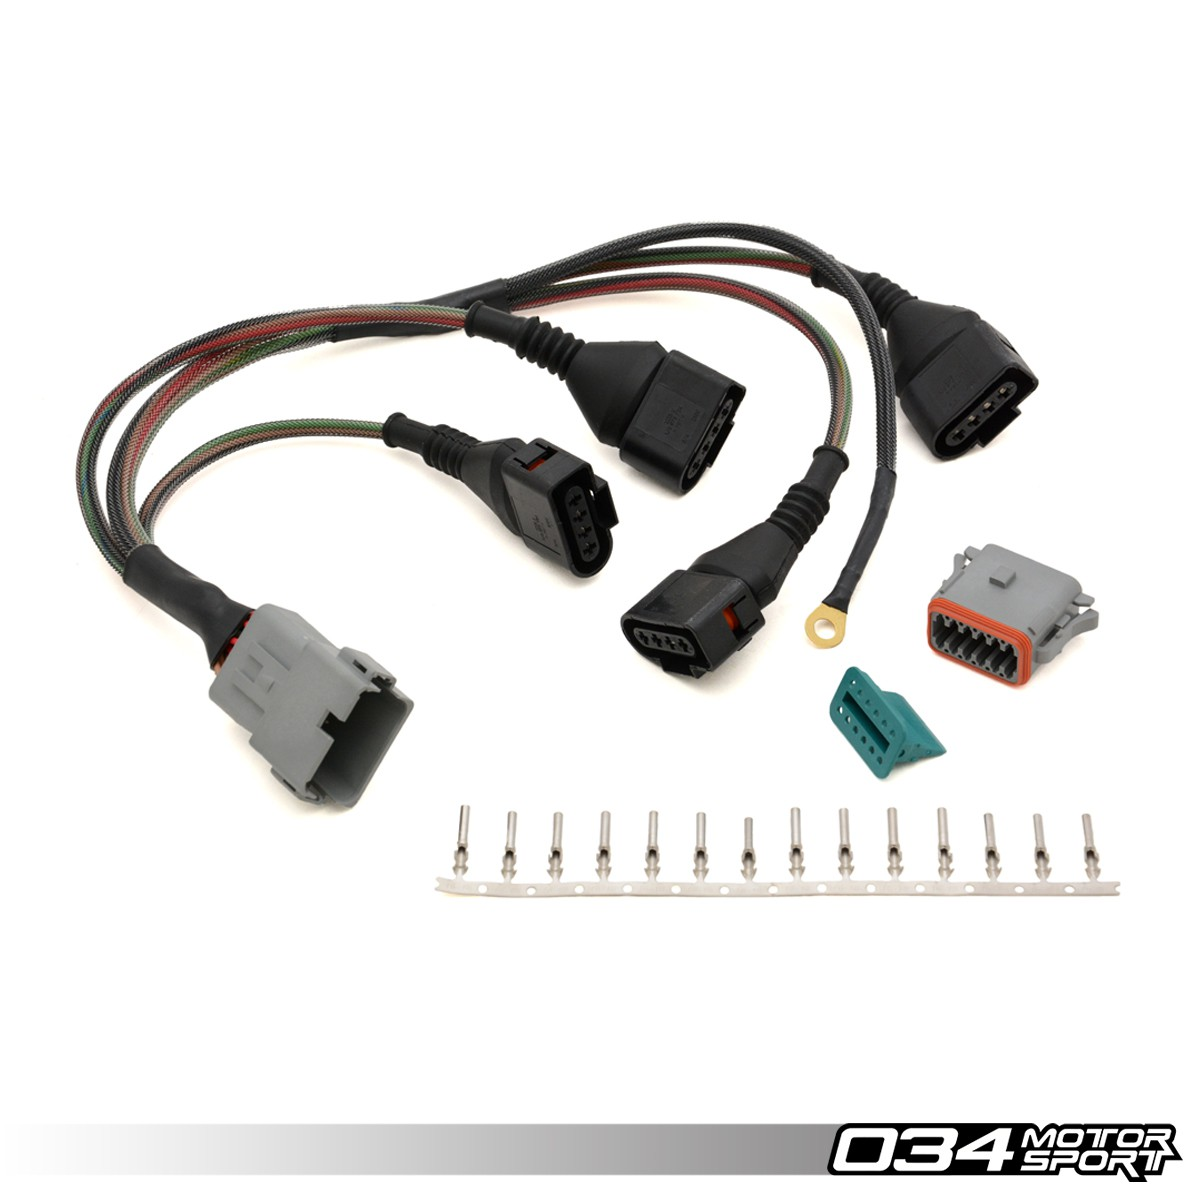 repair update harness audi volkswagen 18t with 4 wire coils 034motorsport 034 701 0004 2 repair update harness, audi volkswagen 1 8t with 4 wire coils how to repair wire harness connector at soozxer.org